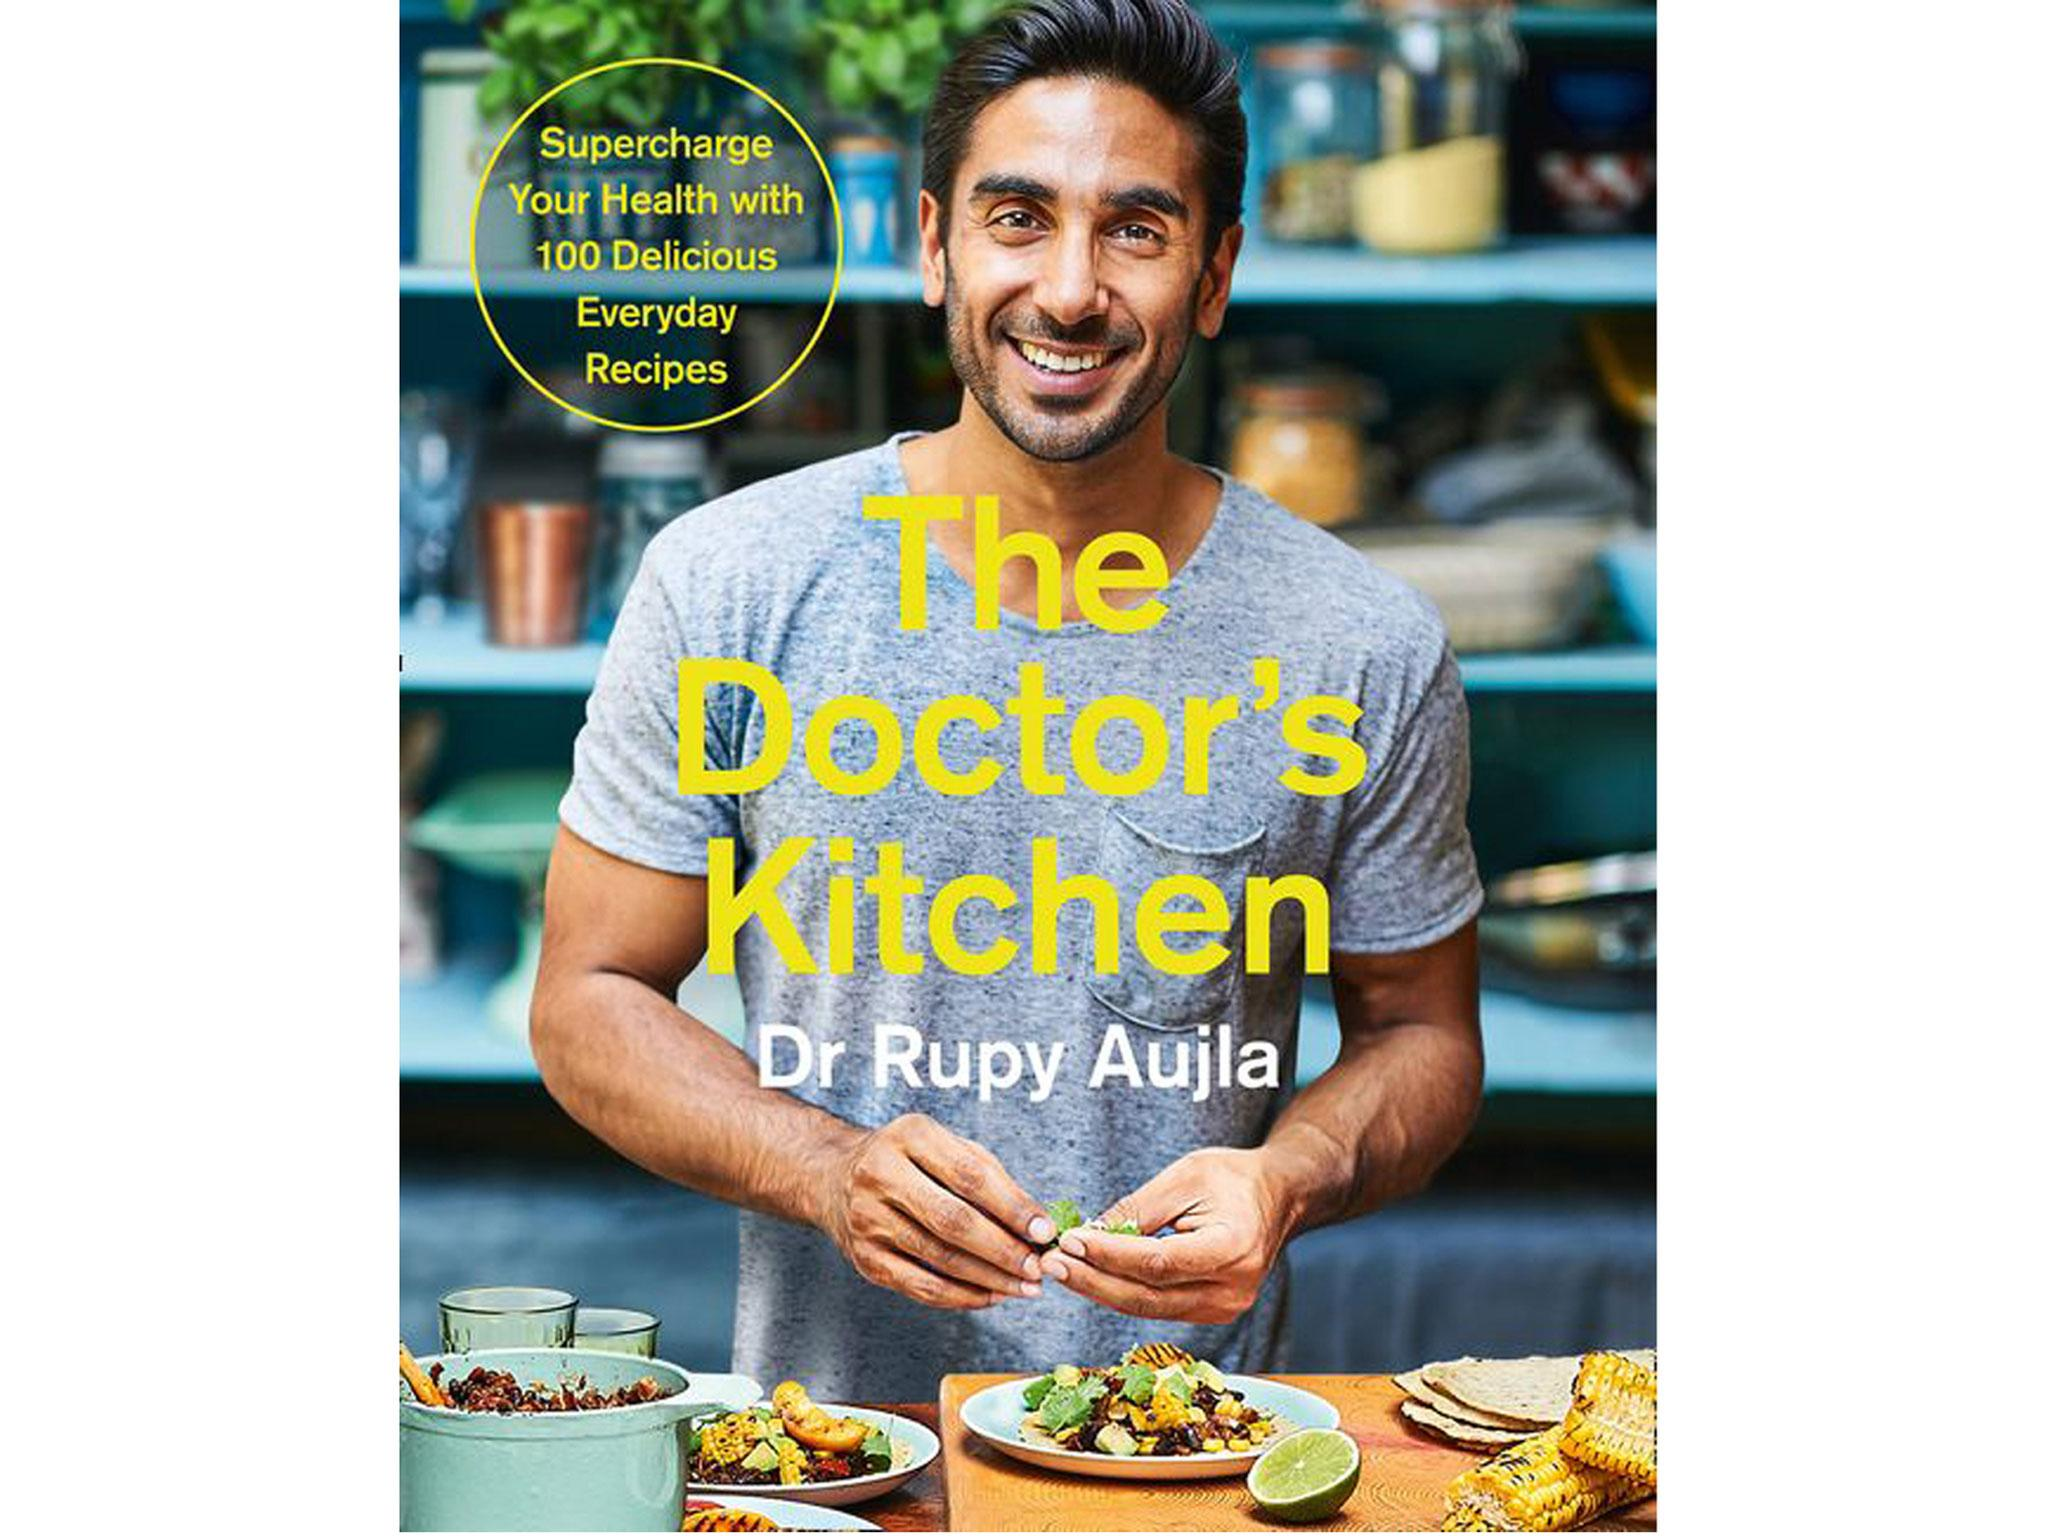 8 best student cookbooks | The Independent